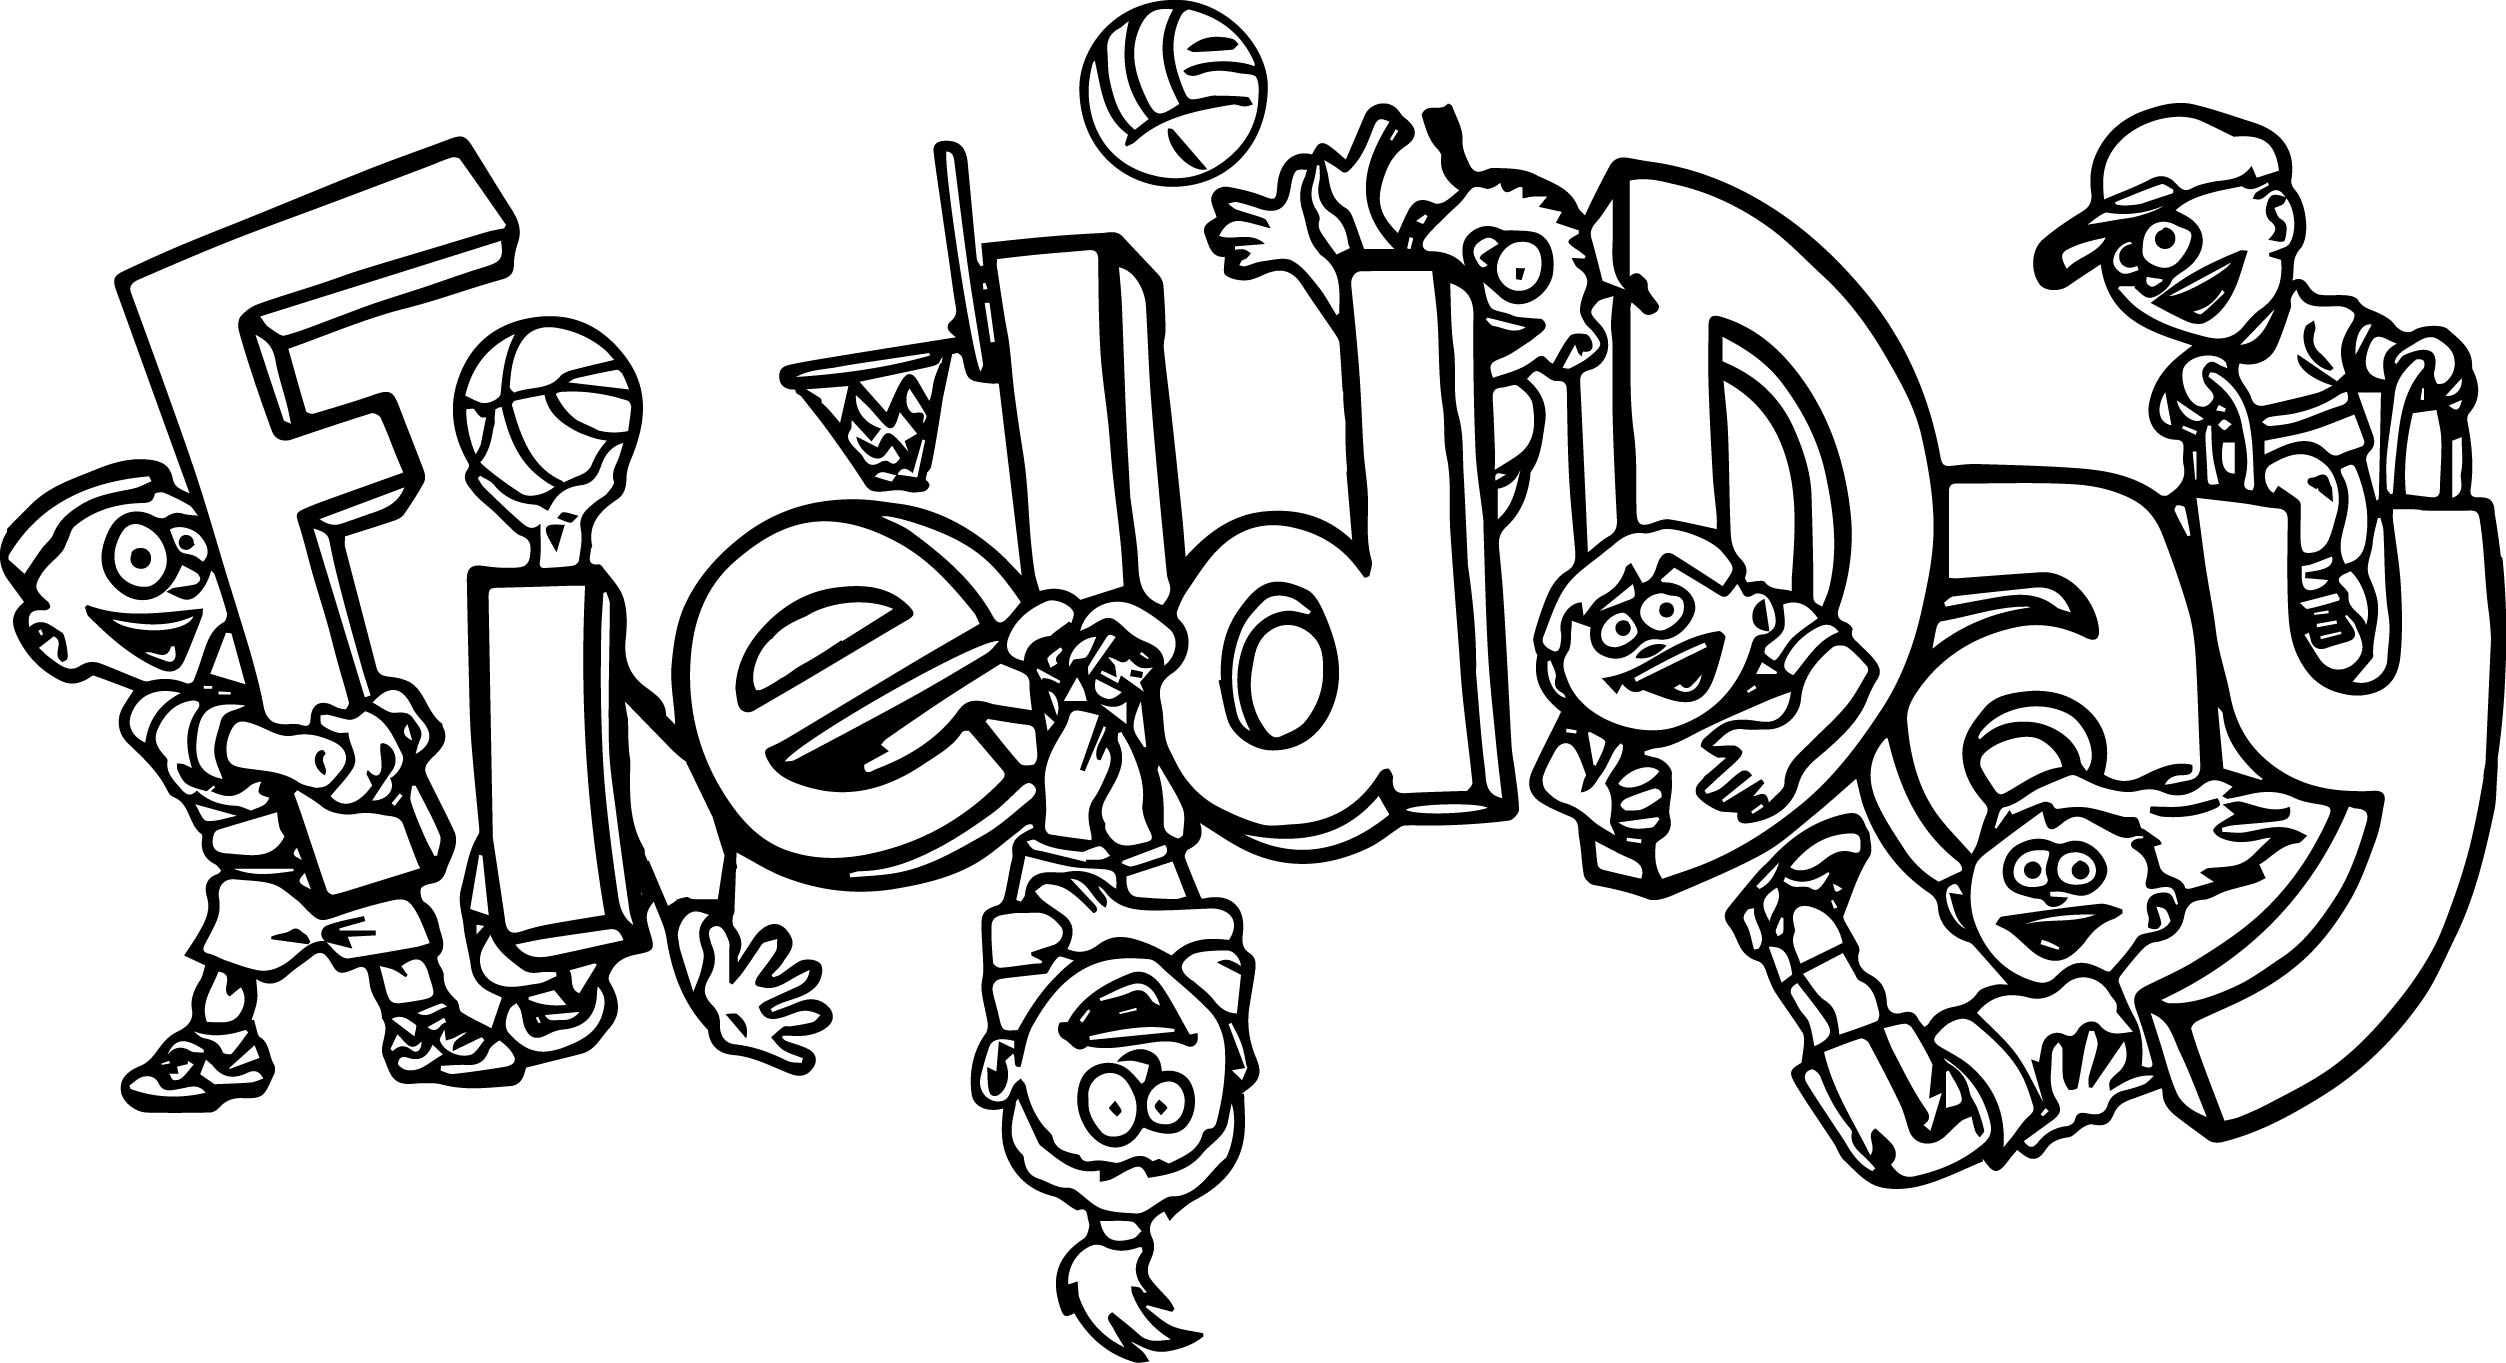 100 Days Of School Field Day Coloring Page | Wecoloringpage